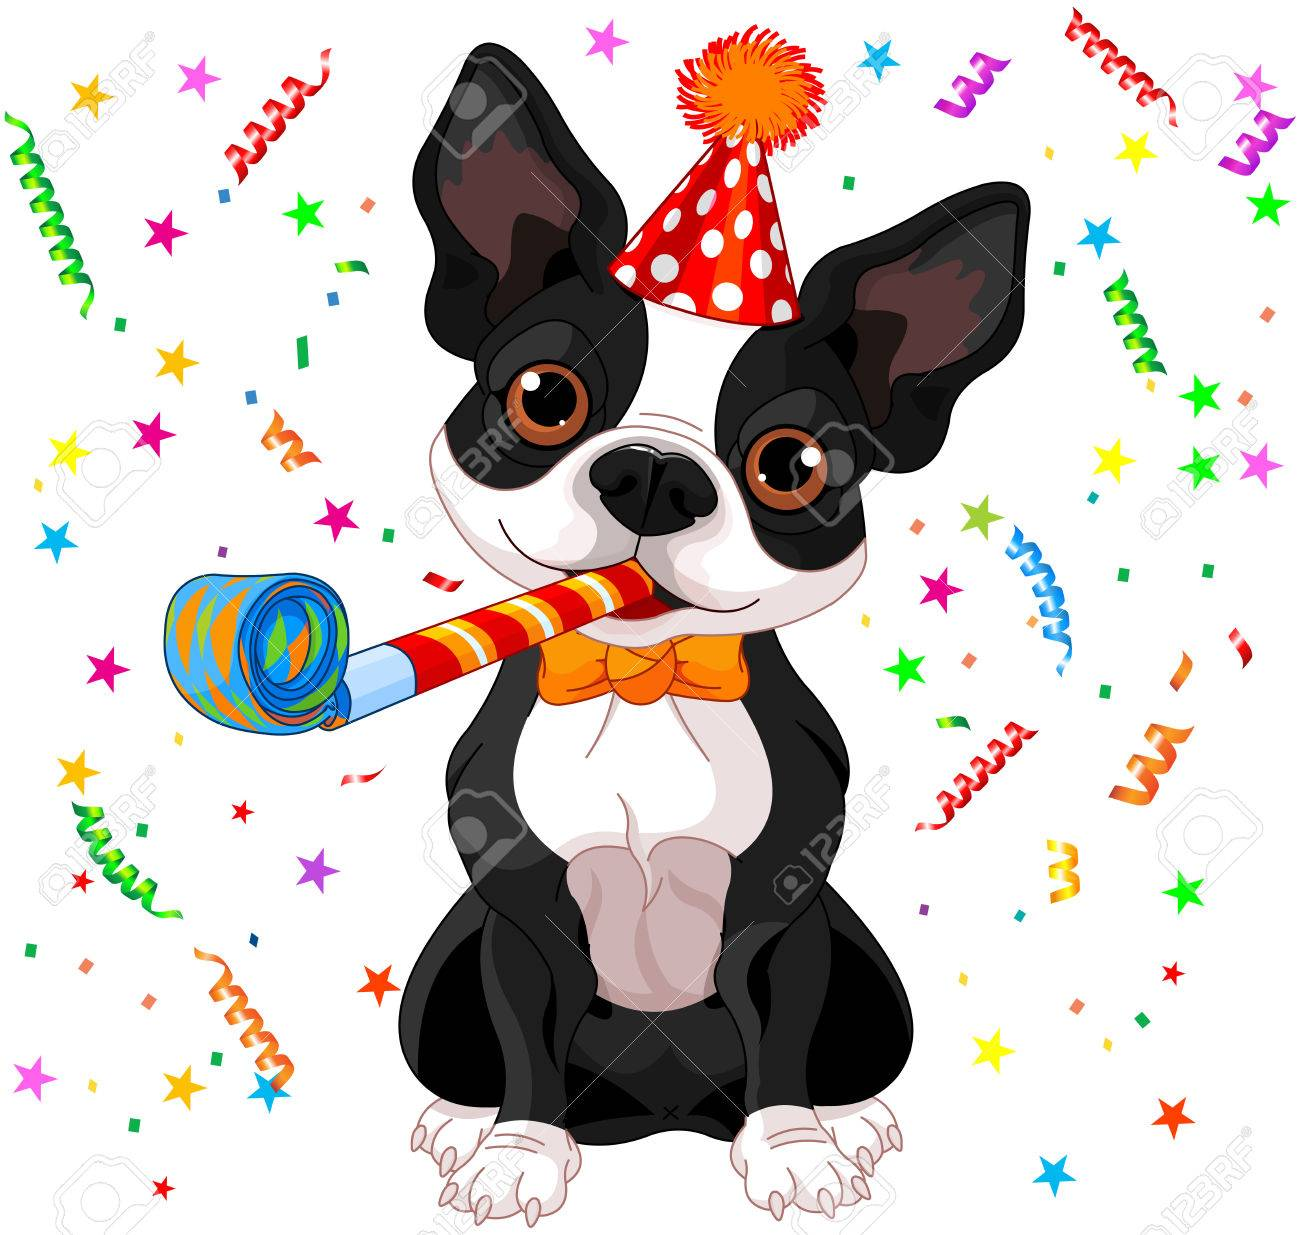 De l'herbe... Mon chien mange de l'herbe!!!!! - Page 3 35588778-illustration-of-cute-boston-terrier-celebrating